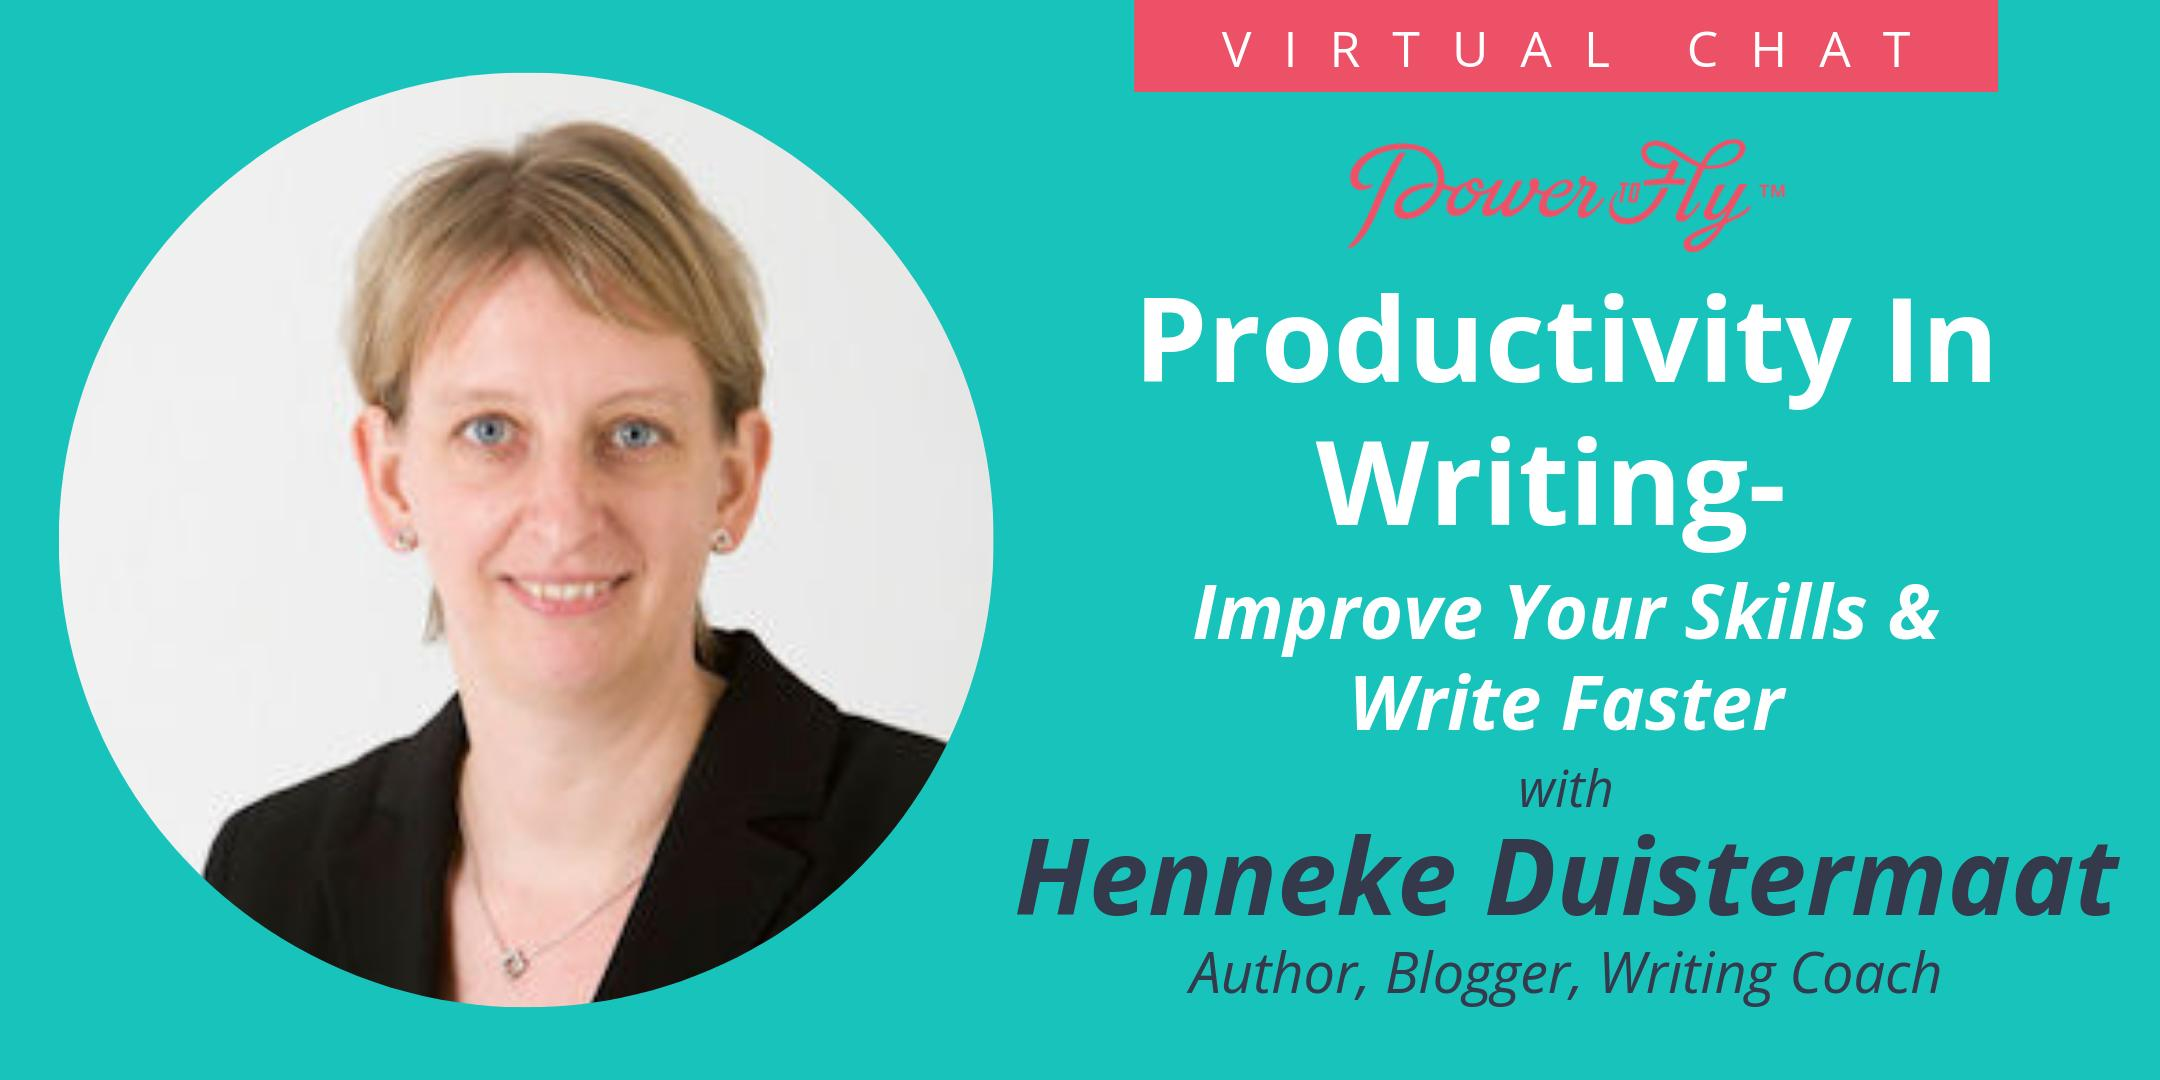 Productivity In Writing- Improve Your Skills And Write Faster